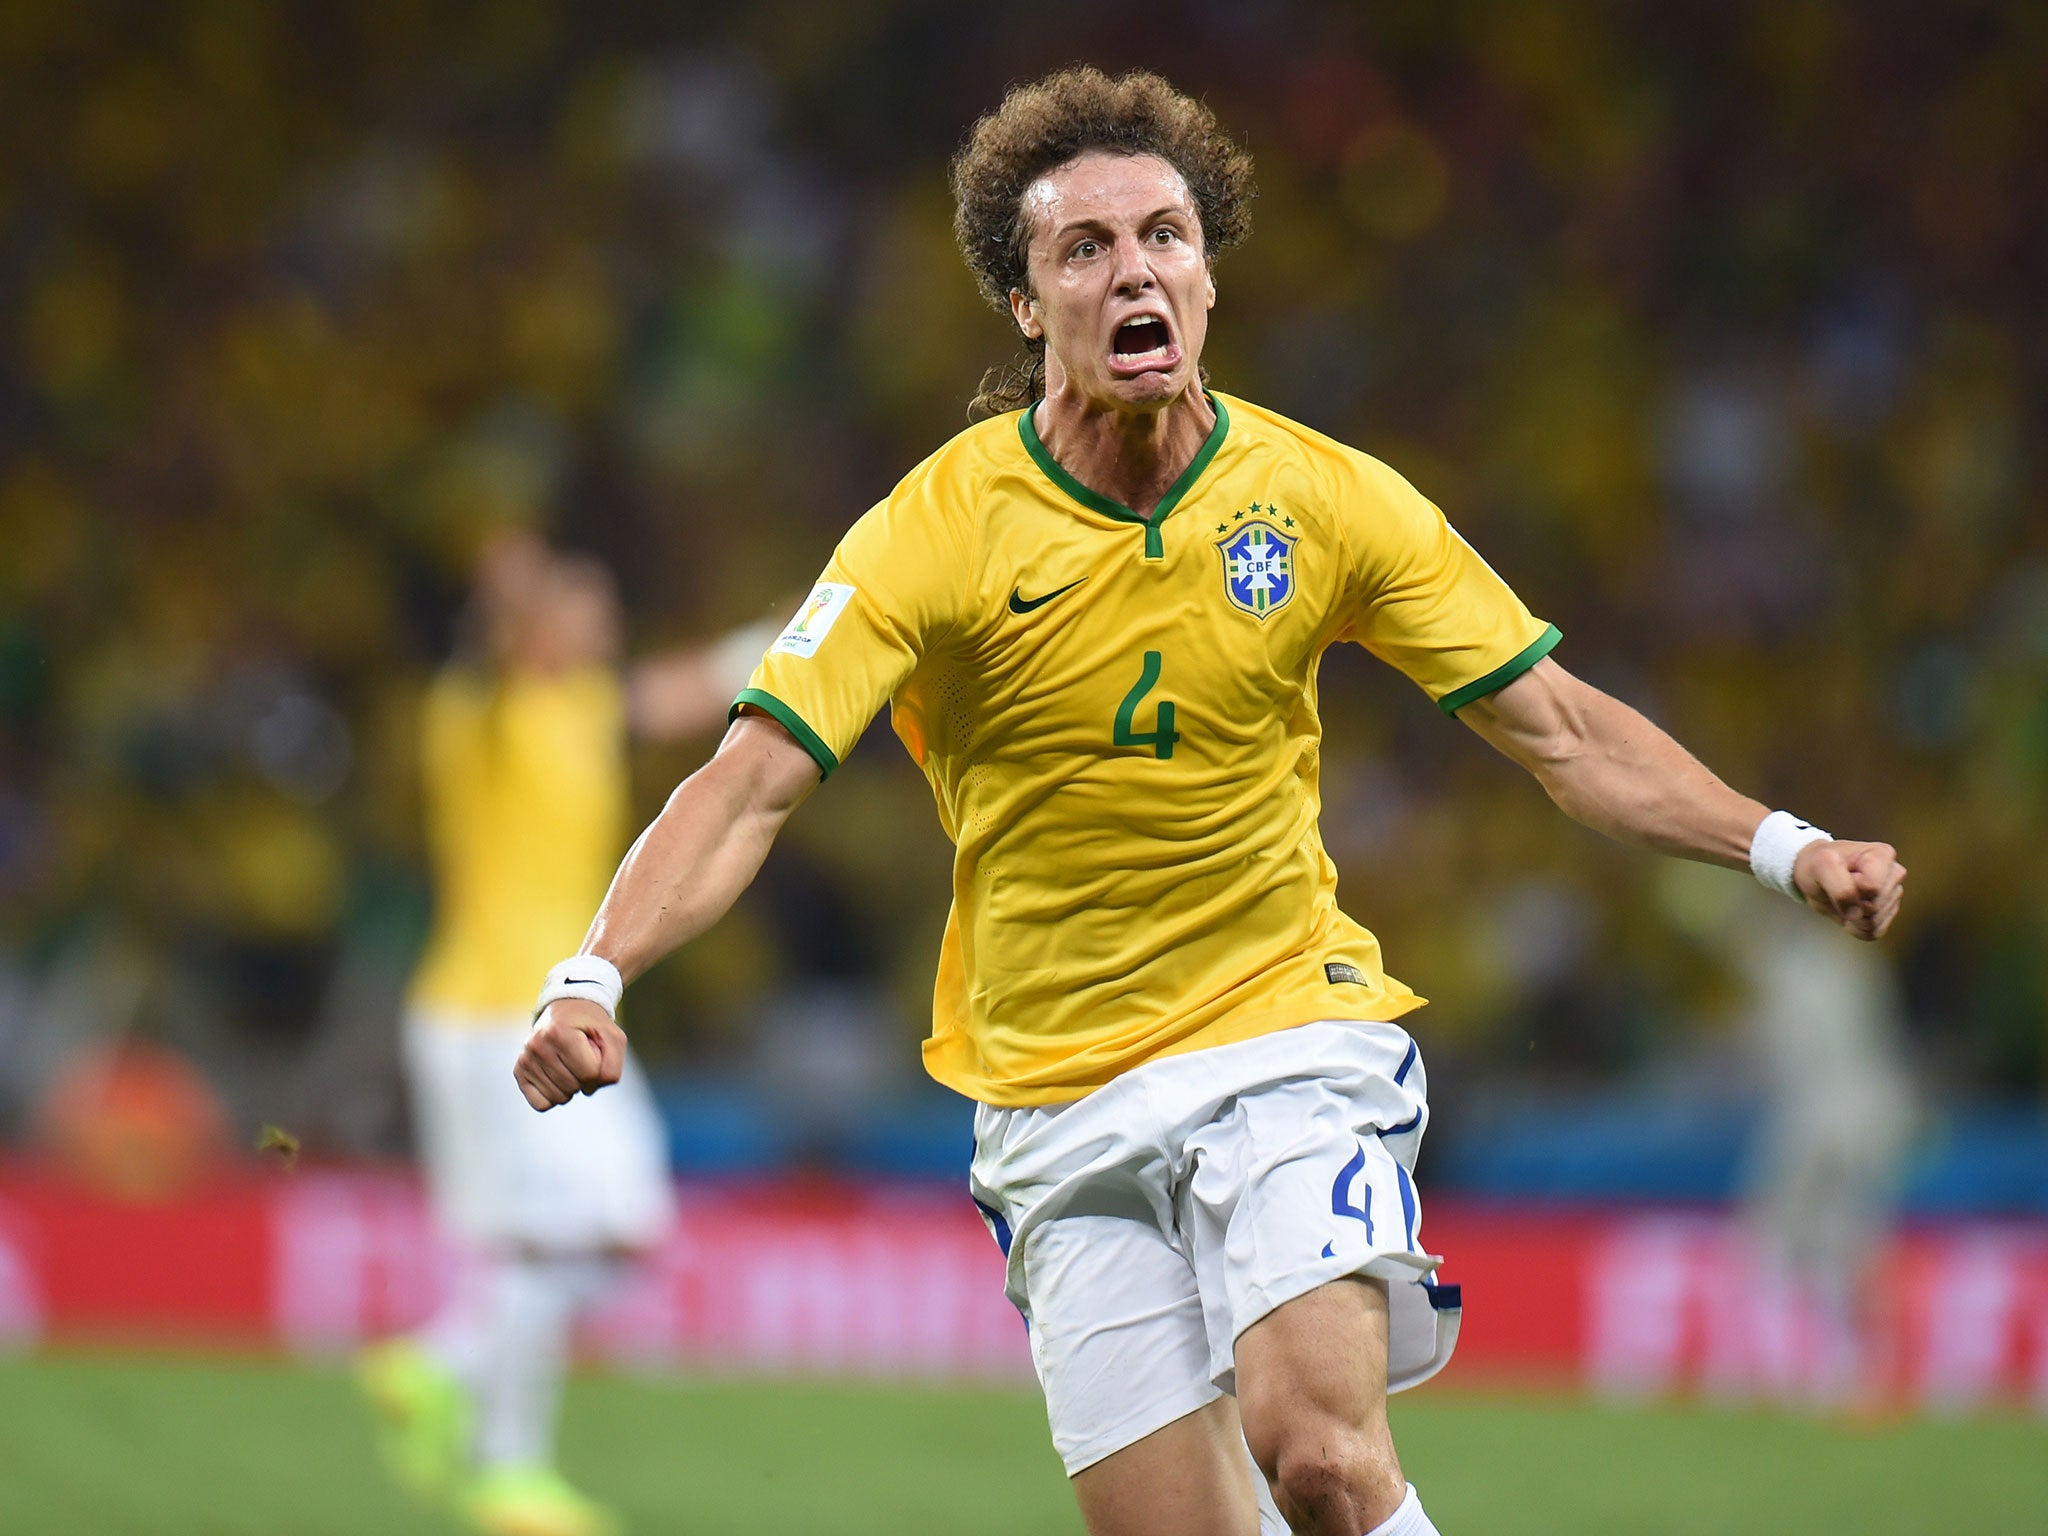 Brazil vs Germany World Cup 2014 match preview: Can Germany take advantage  of Brazil's troubled defence? | The Independent